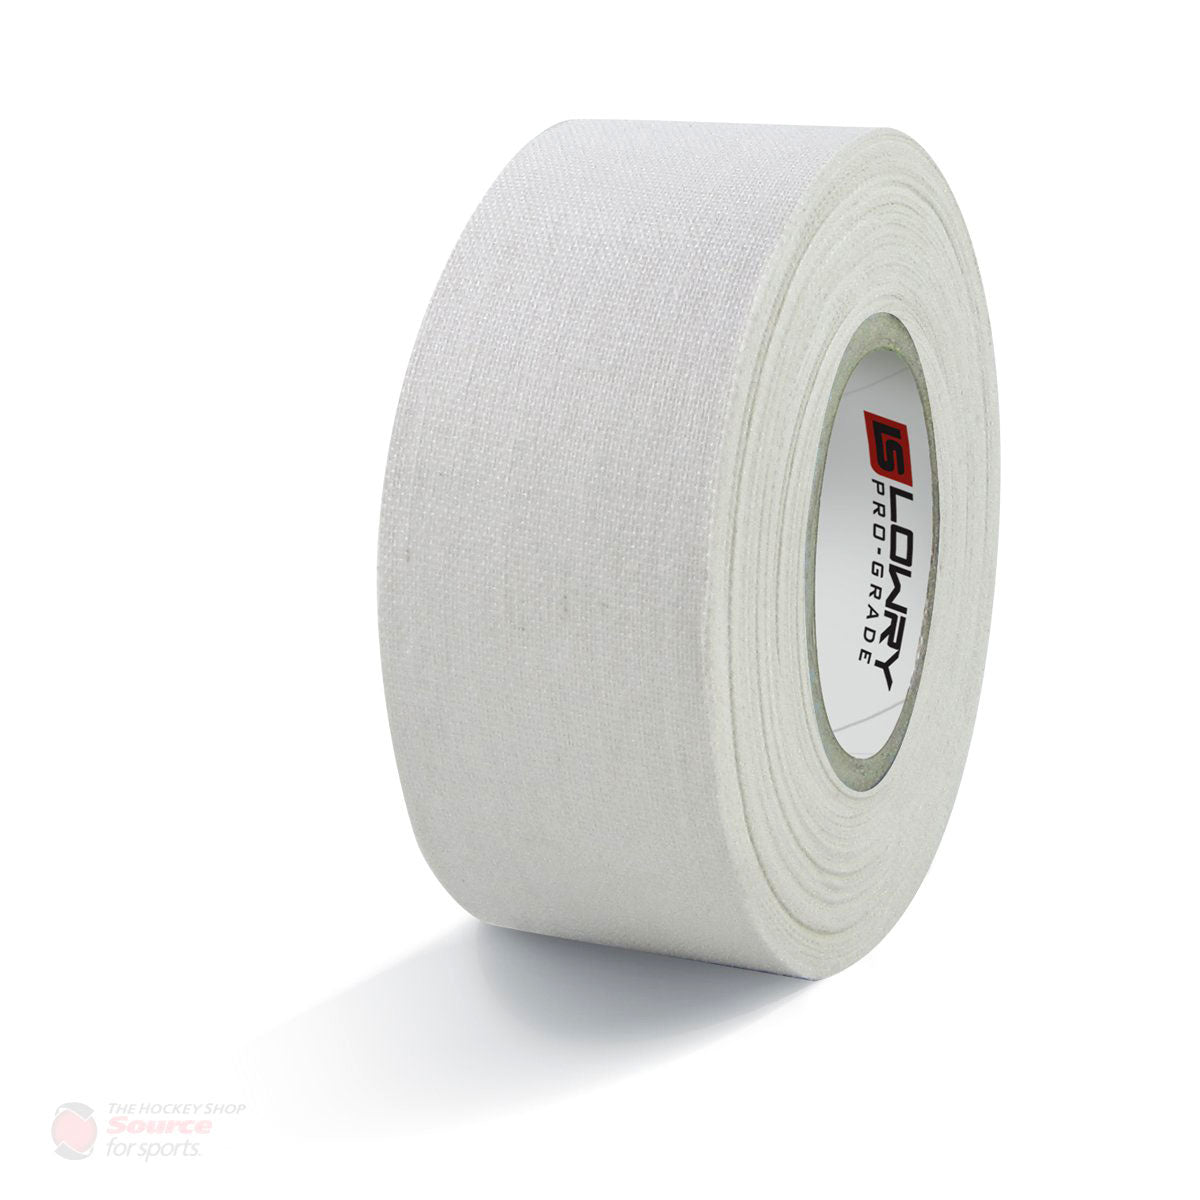 Lowry Sports Pro-Grade White Hockey Stick Tape - Small Roll